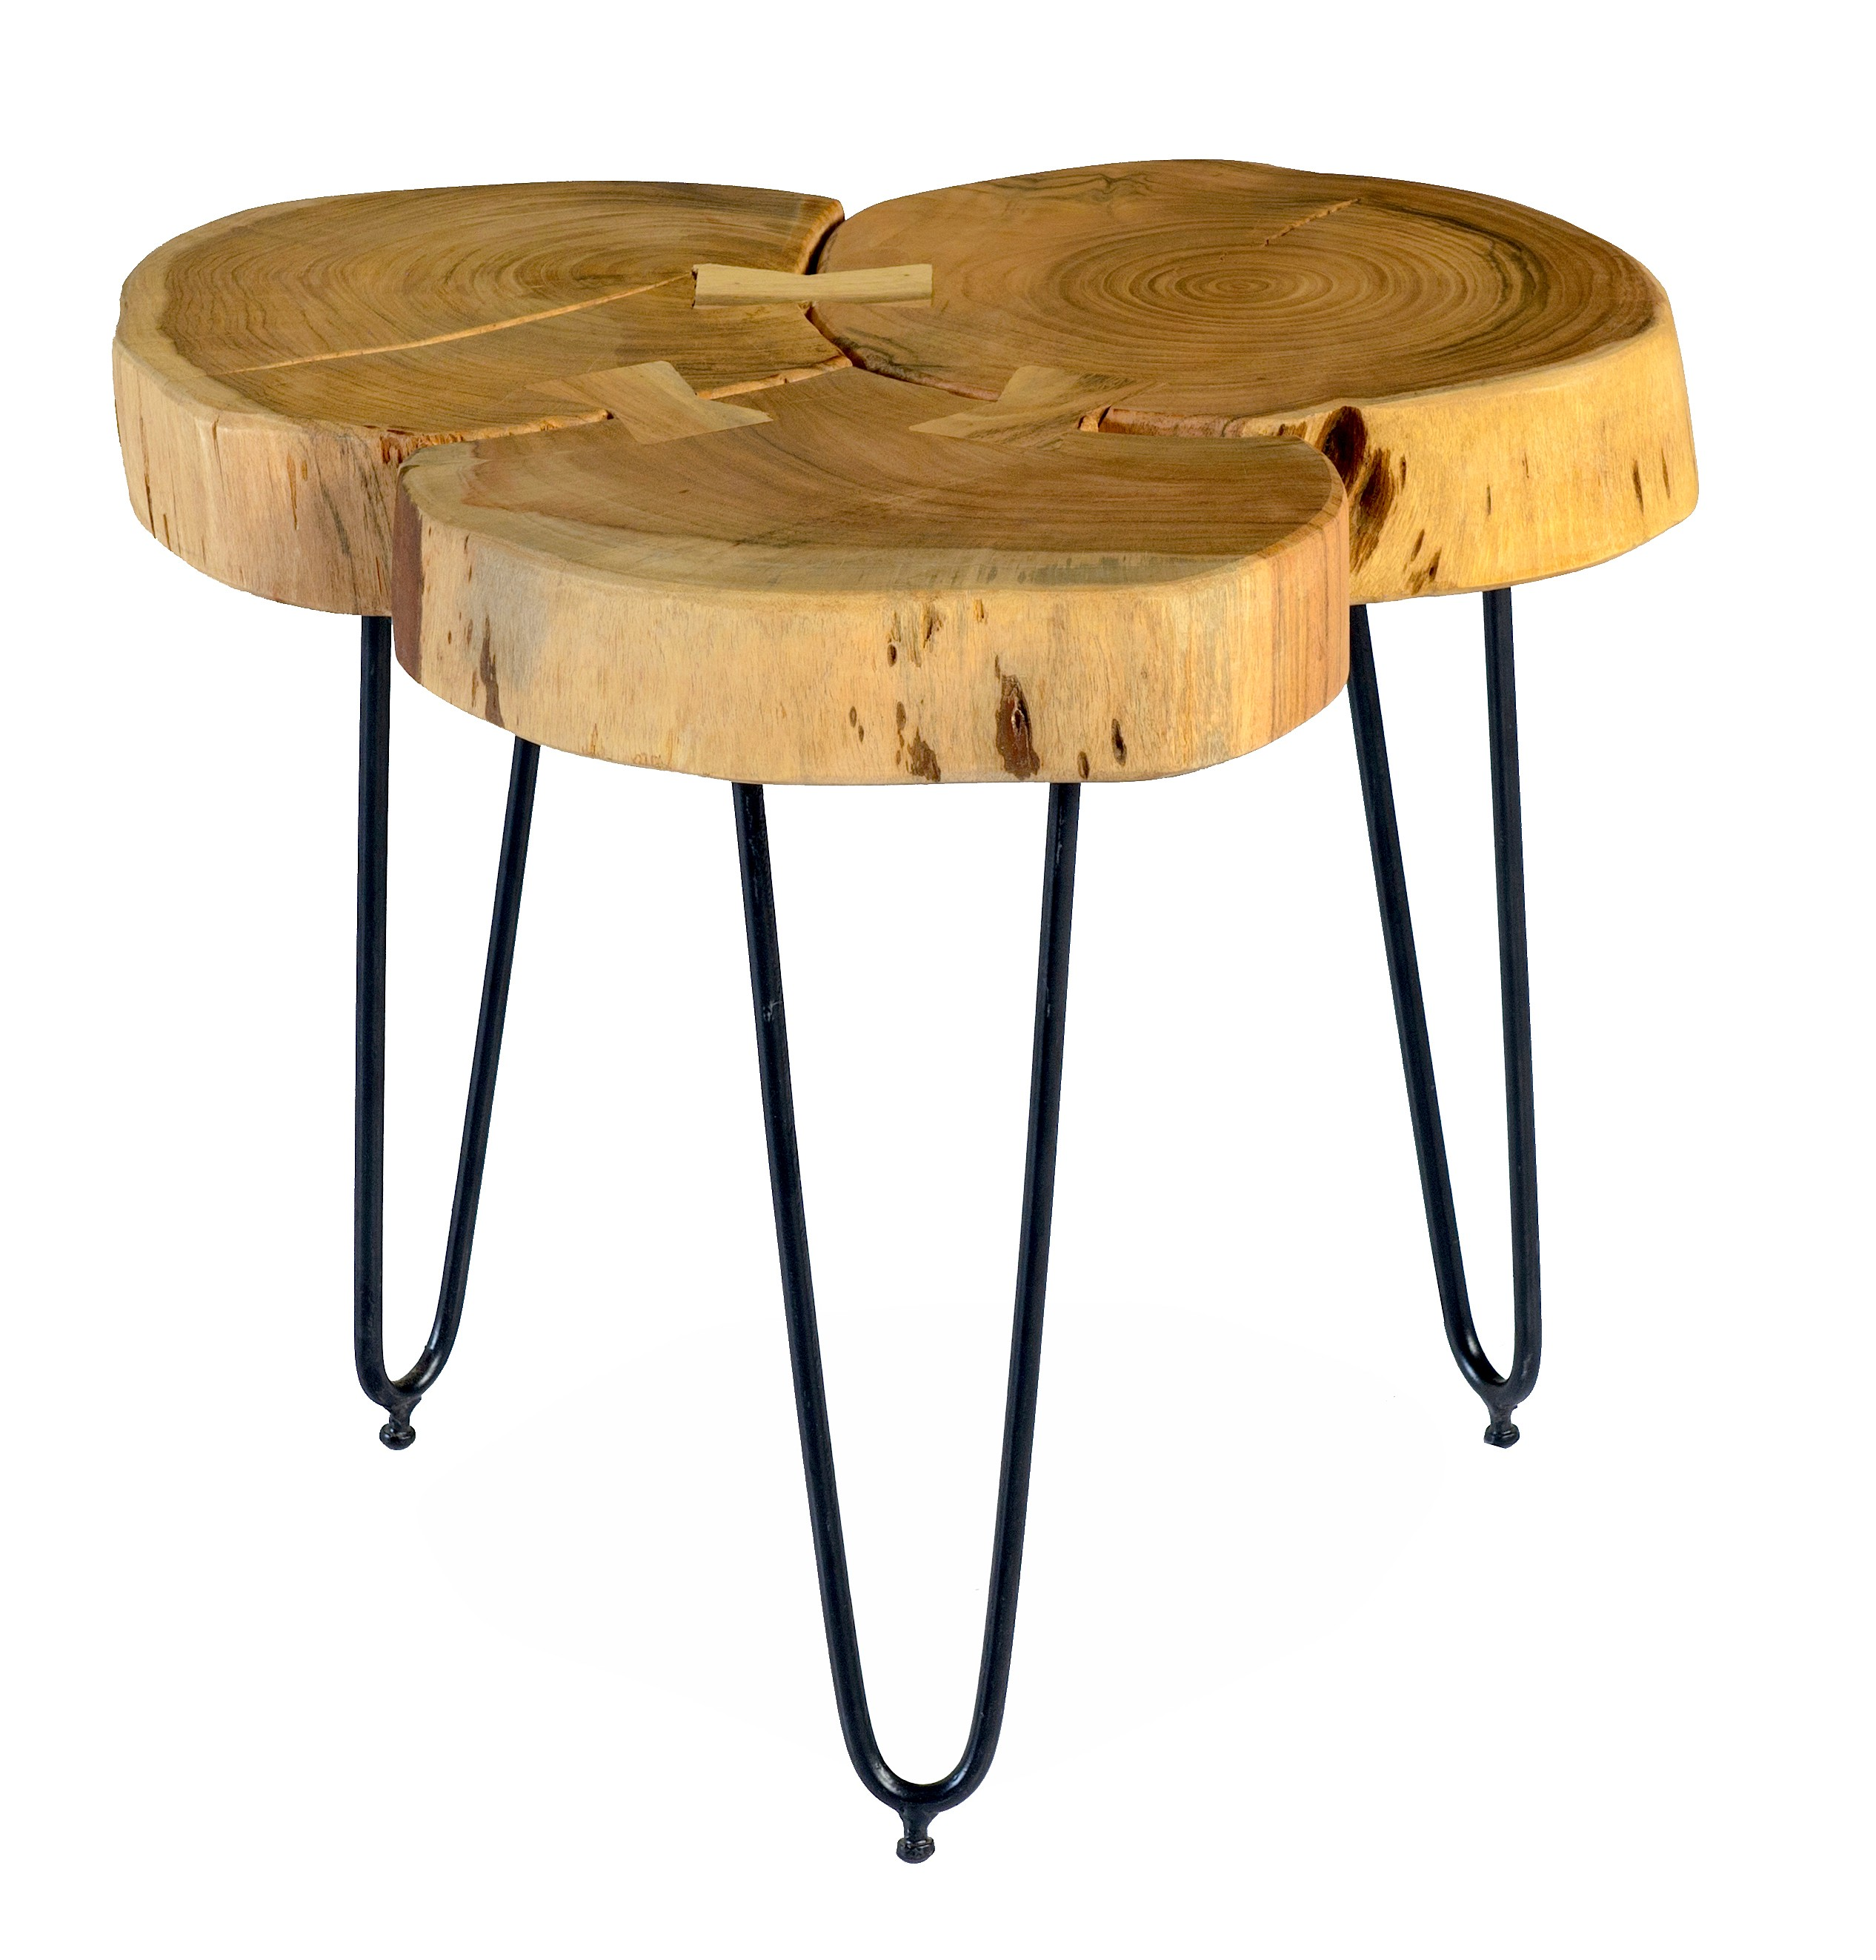 3t Woody Table Basse Lemobilier ma N0m8nwyvO